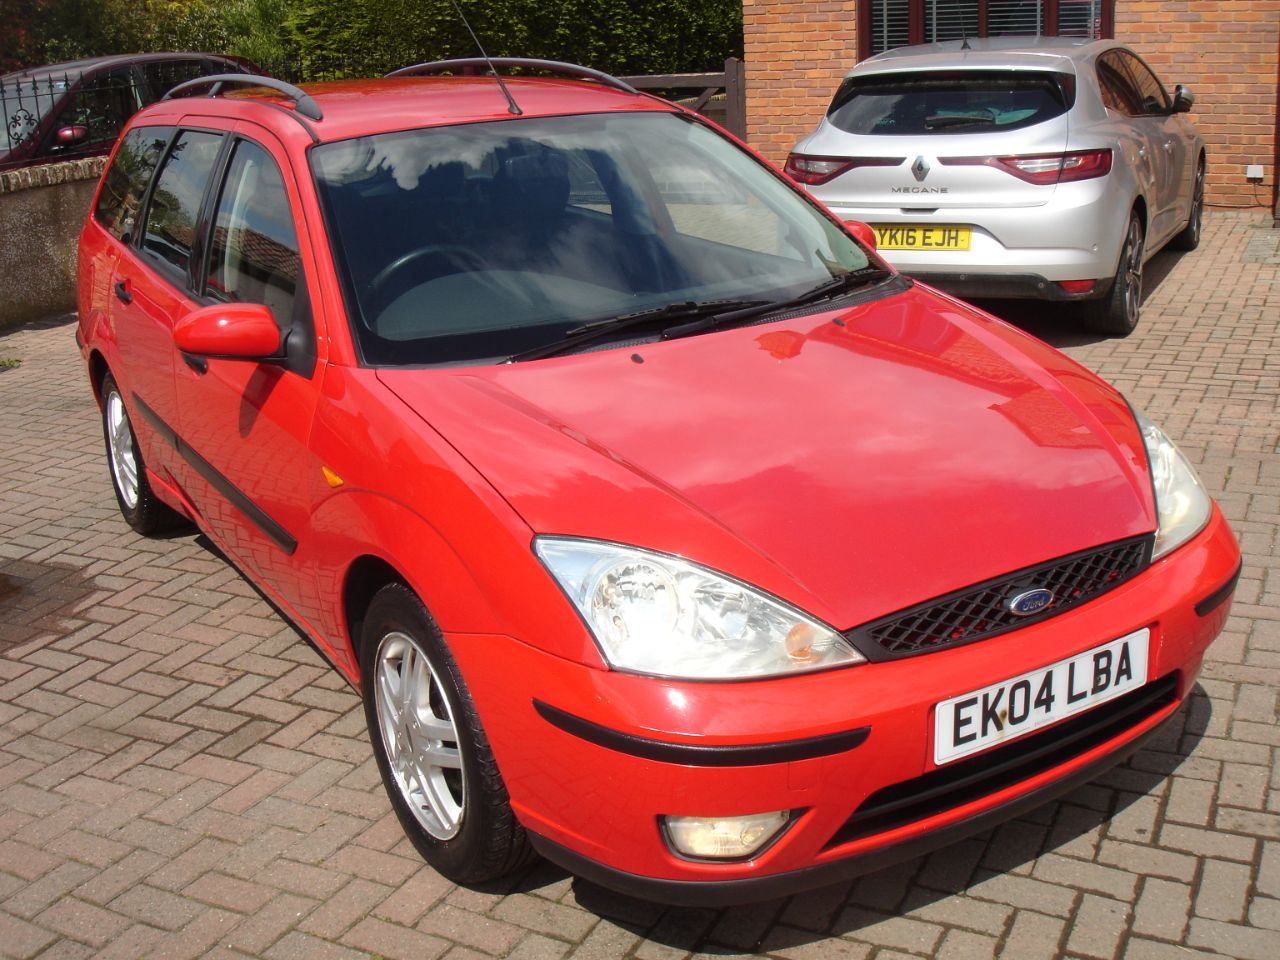 Ford Focus 1.6 Zetec Estate 5dr Estate Petrol Solid Red at Level Pitch Selby